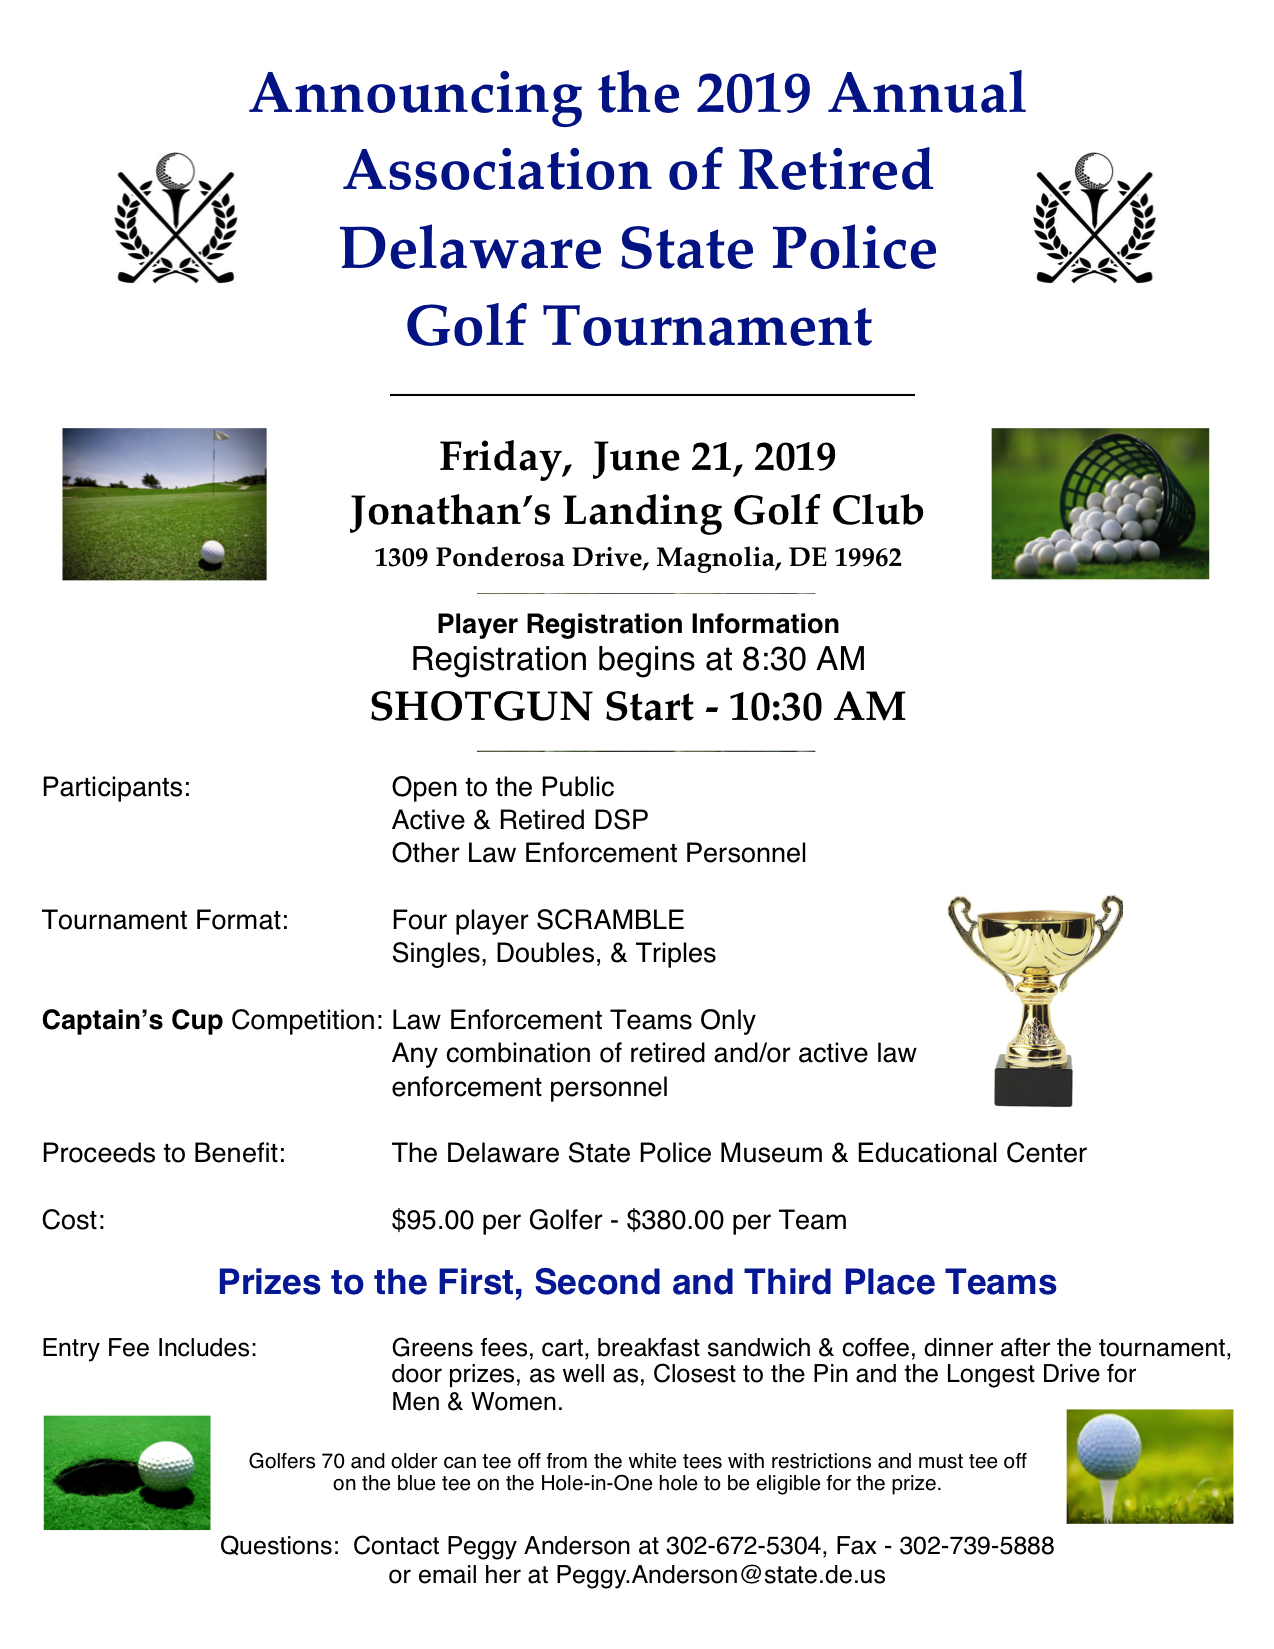 Association of Retired Delaware State Police 2017 Annual Golf Tournament